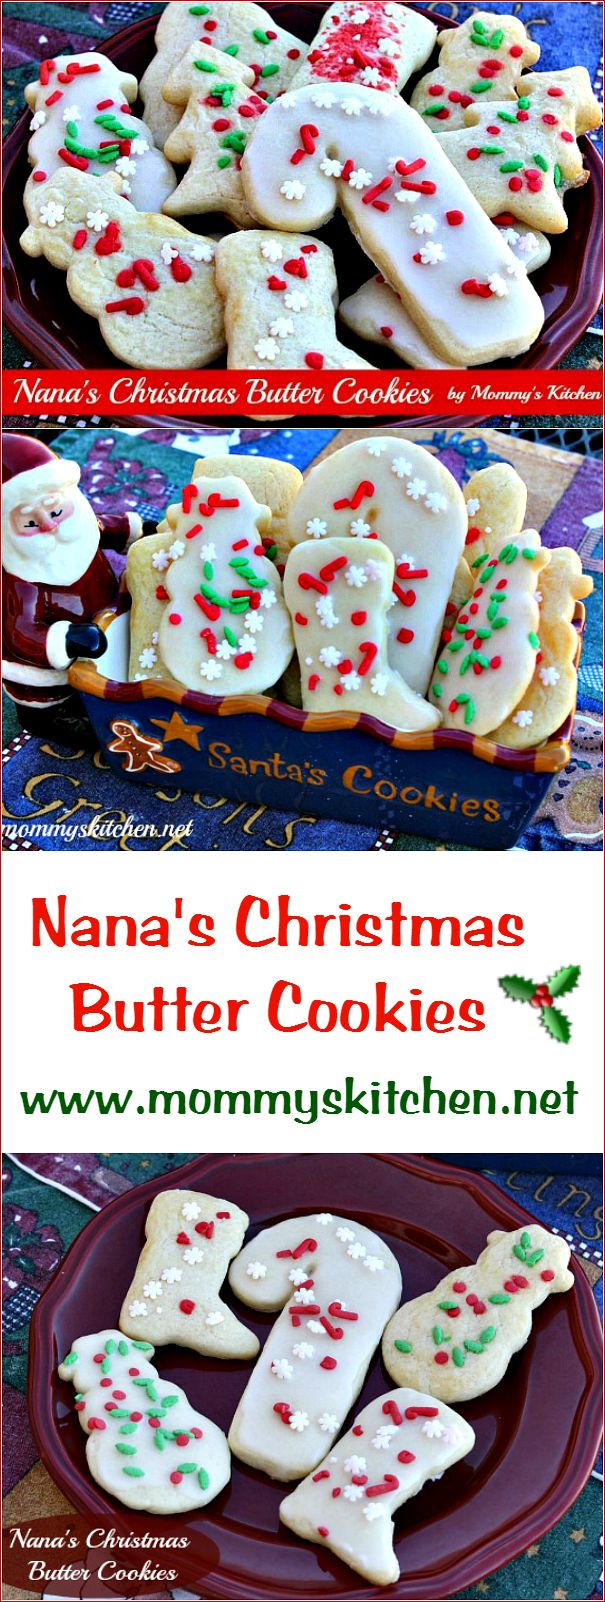 It just wouldn't be Christmas without my moms Christmas Butter Cookies. I have had these cookies every year for Christmas for over 40 years. When I was a kid I remember my mother working in the kitchen making batch after batch of these yummy cookies to mail off to my older siblings. #christmas #holidaybaking #cookies #tradition #mommyskitchen